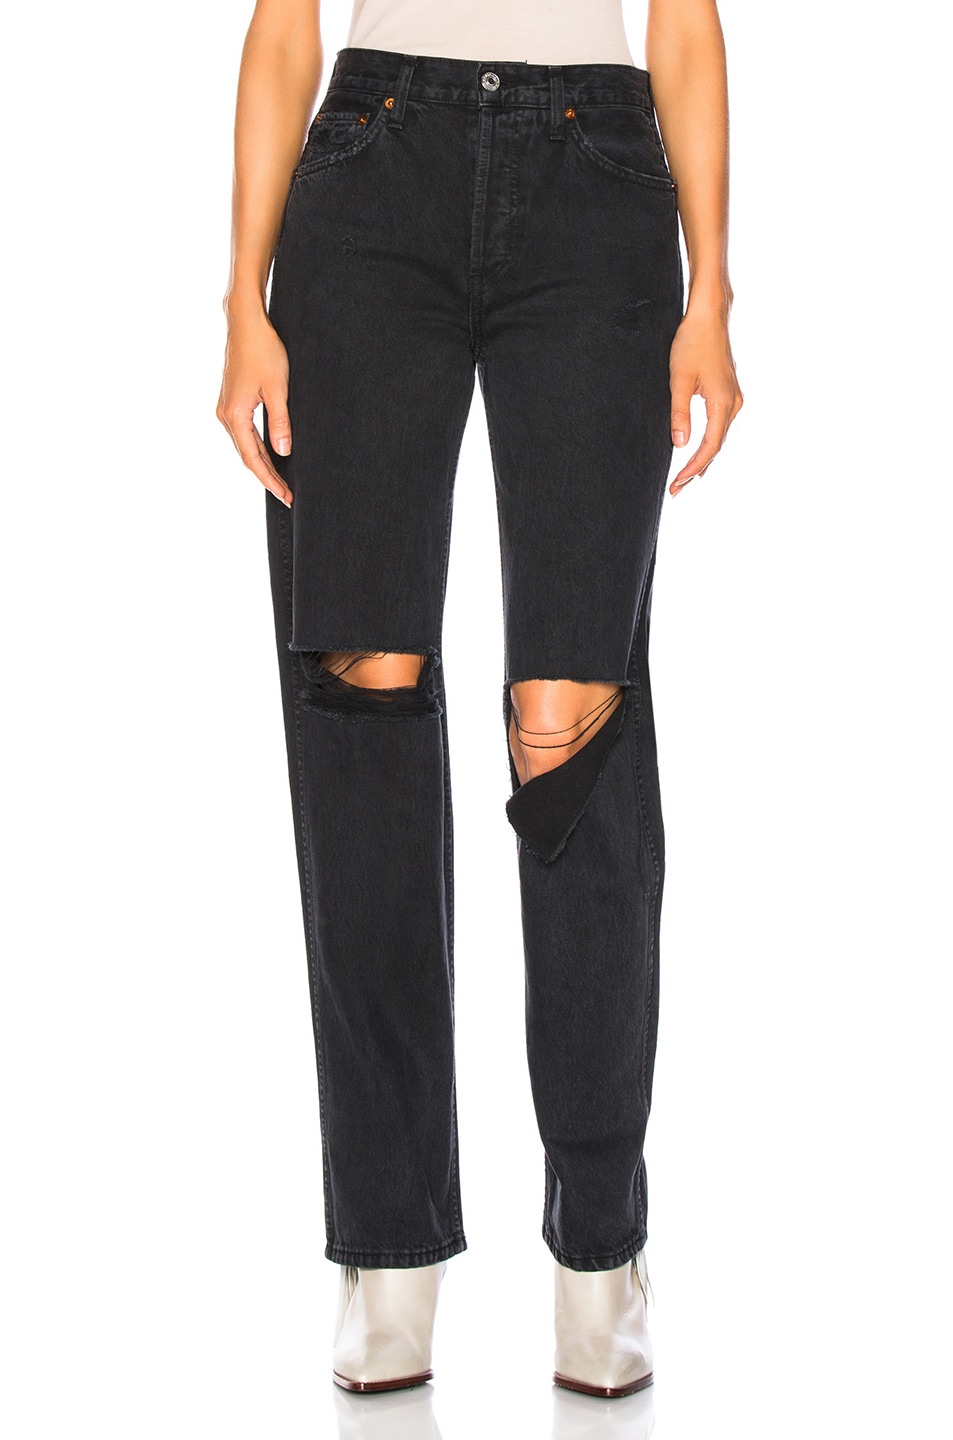 Image 1 of RE/DONE ORIGINALS High Rise Loose in Washed Black